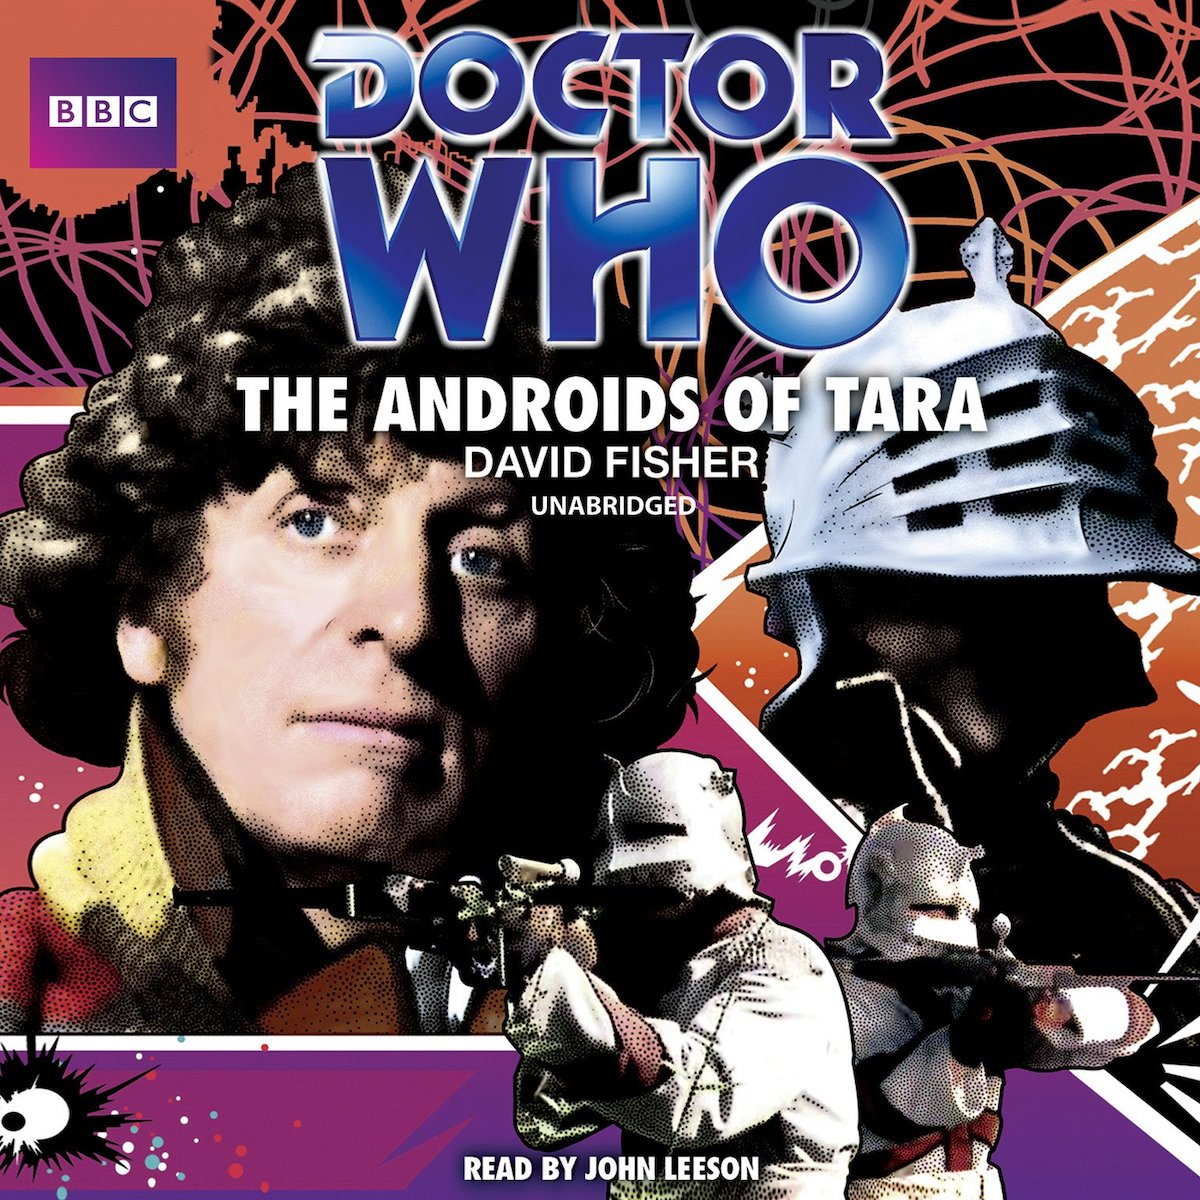 The Androids Of Tara